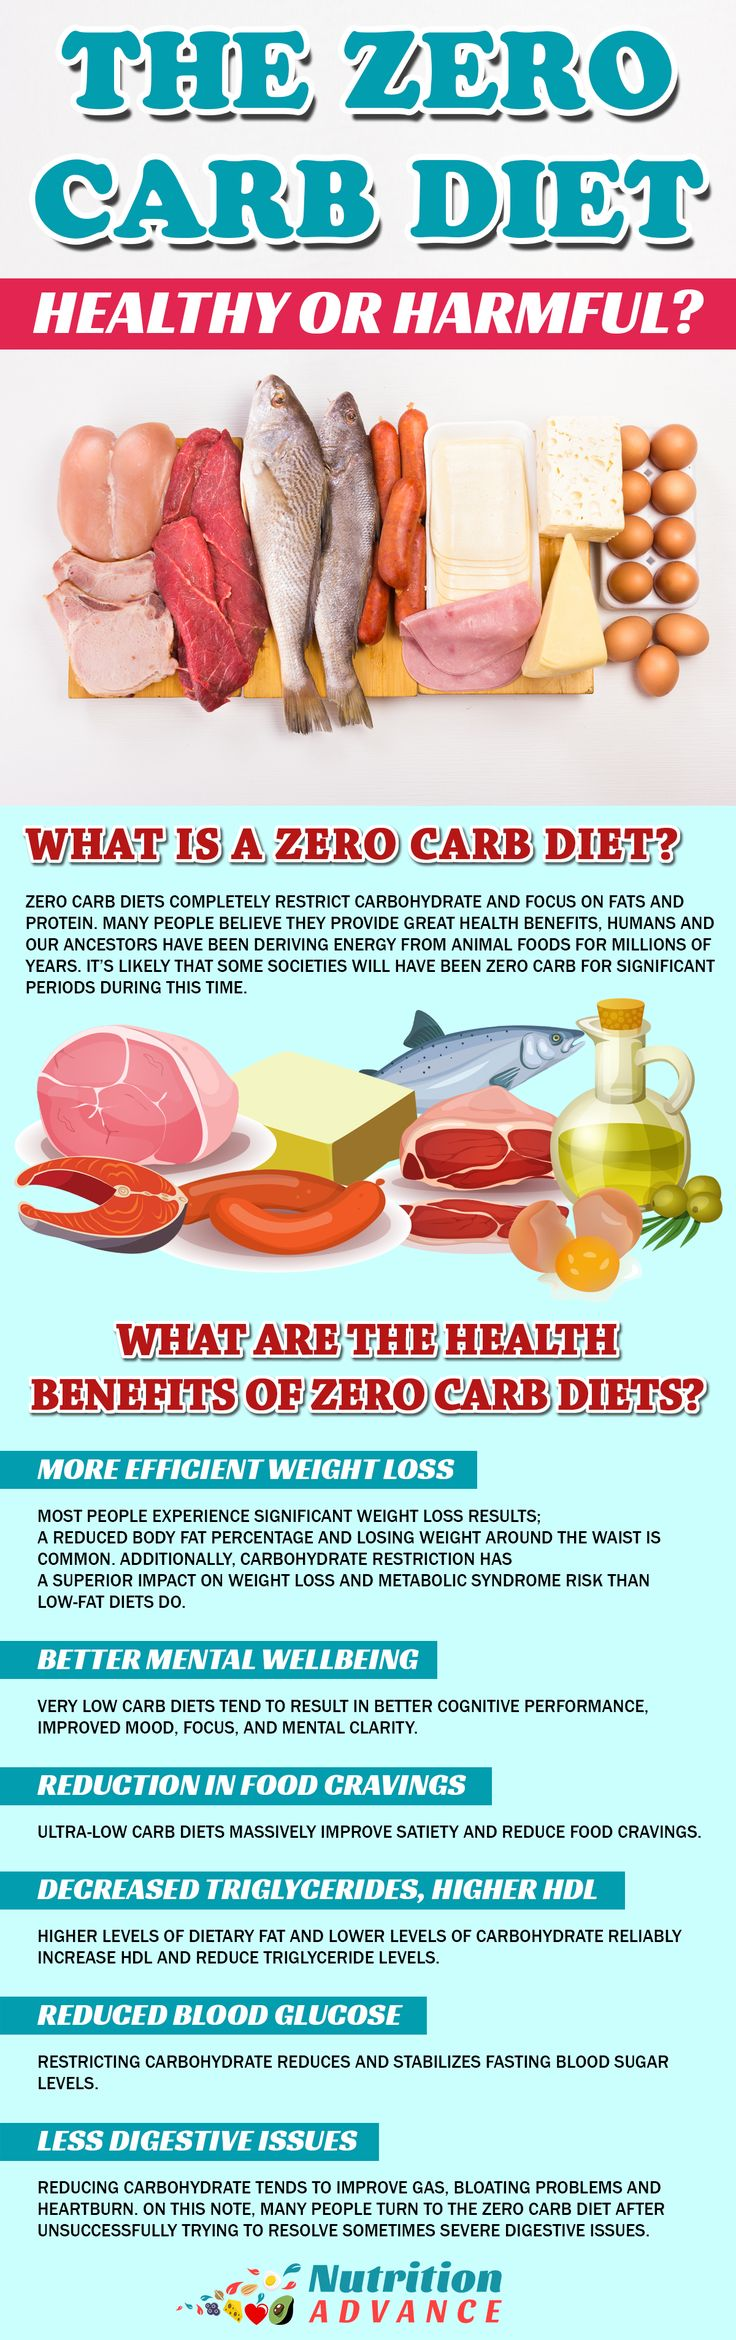 The Zero Carb Diet: Is it Healthy or Harmful? This infographic lists some of the health benefits of the zero carb diet, and the article provides a balanced view of the possible positives and negatives of zero carb. Contrary to low carb and keto diets, this one only allows animal foods and isolated fats from plants - no carb sources. Can it be a good idea or is it going too far? Find out at http://nutritionadvance.com/zero-carb-diet via: @nutradvance